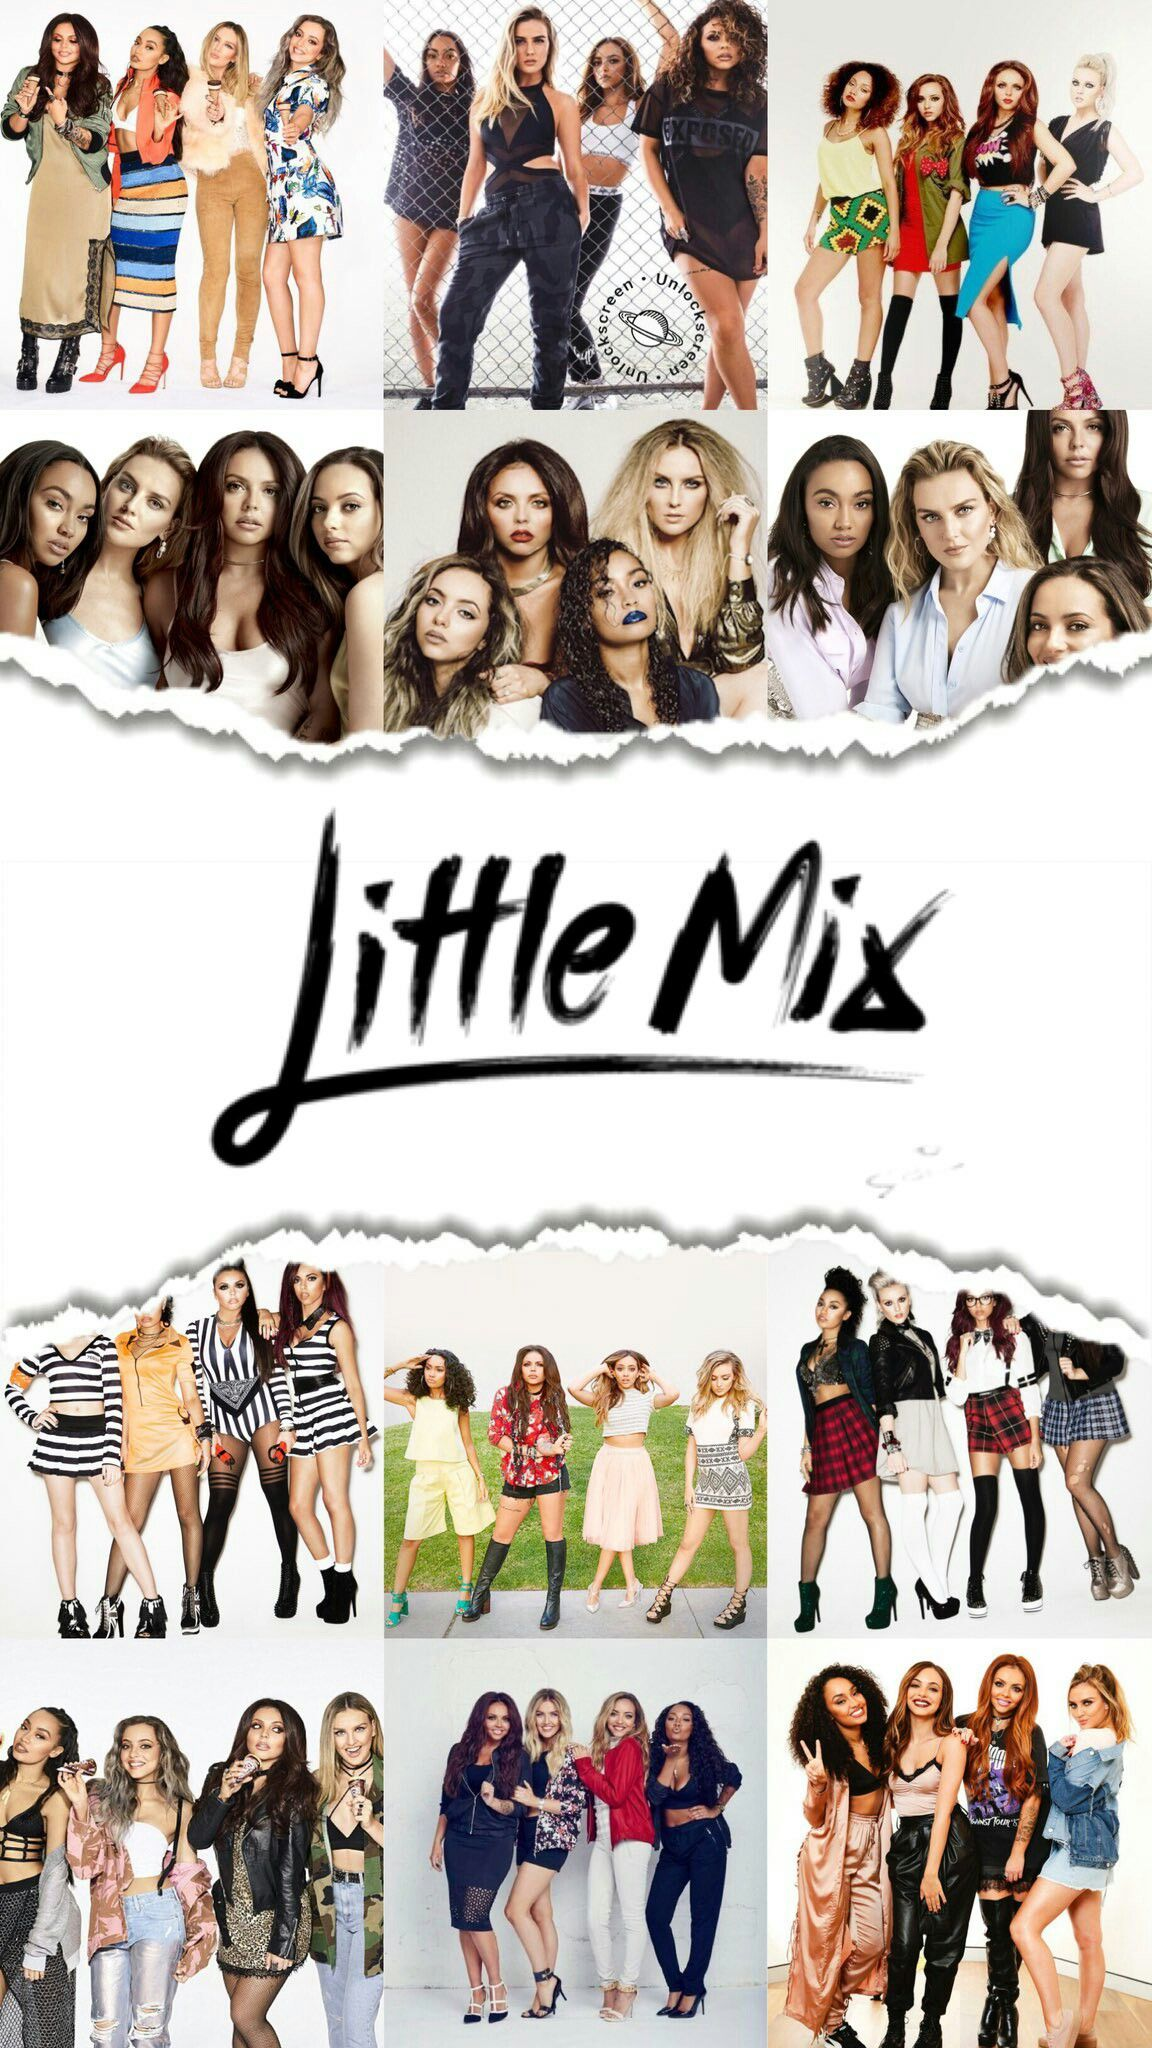 CHOOSE YOUR SIZE FREE P+P NEW 2019 LM5 Summer Hits UK Music Little Mix Poster